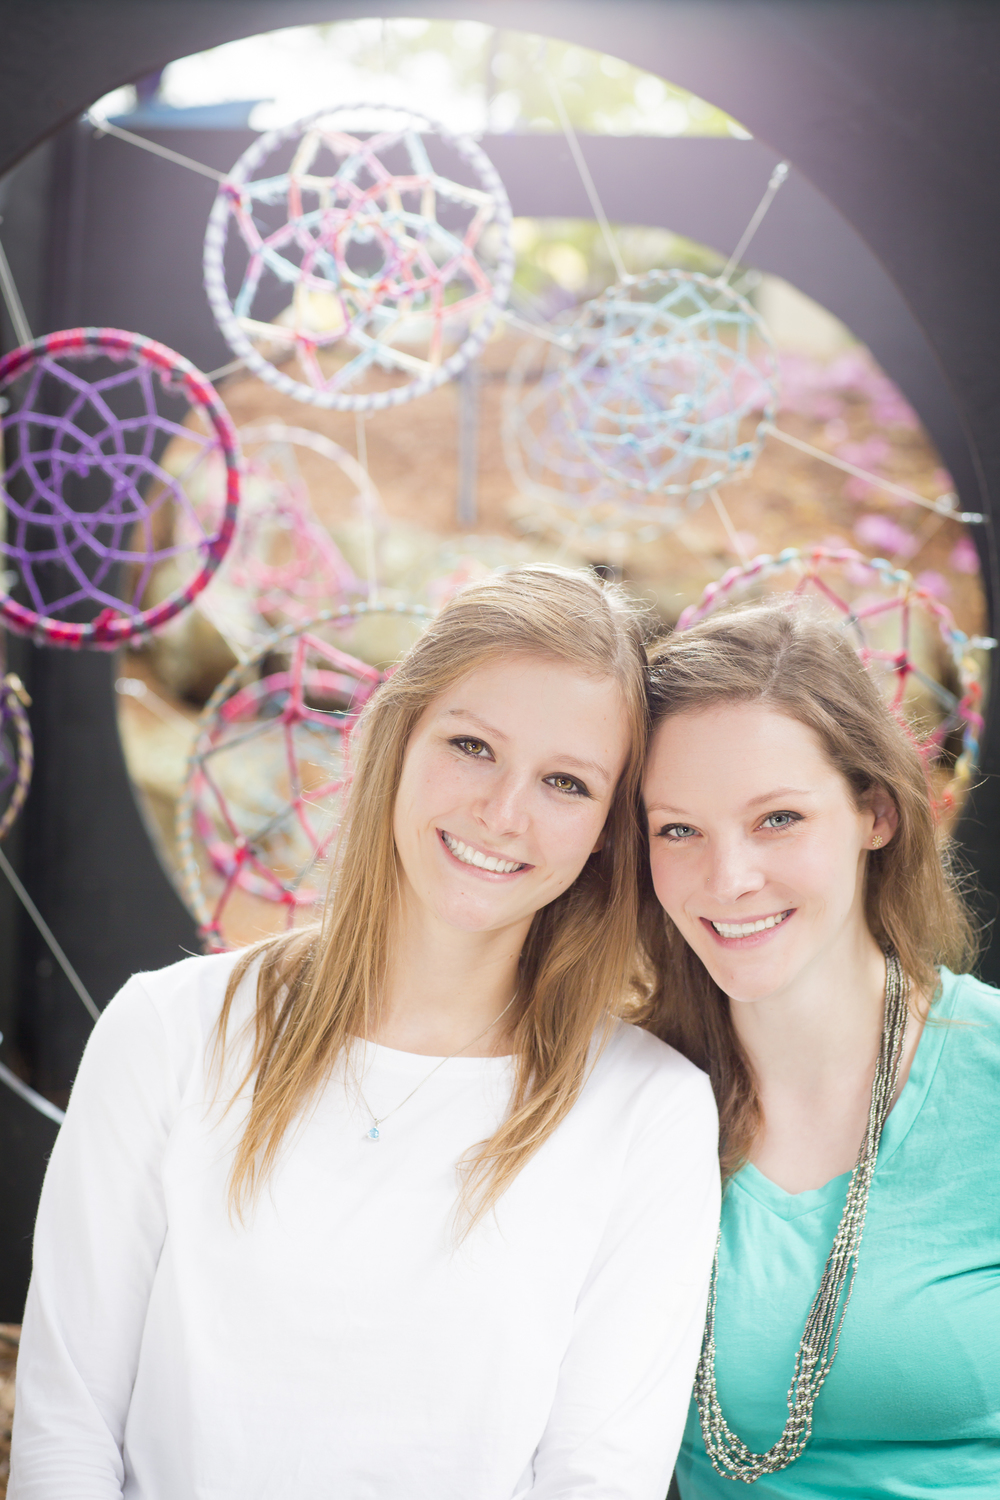 19 2 sisters family portrait outdoor session vibrant dream catchers.jpg